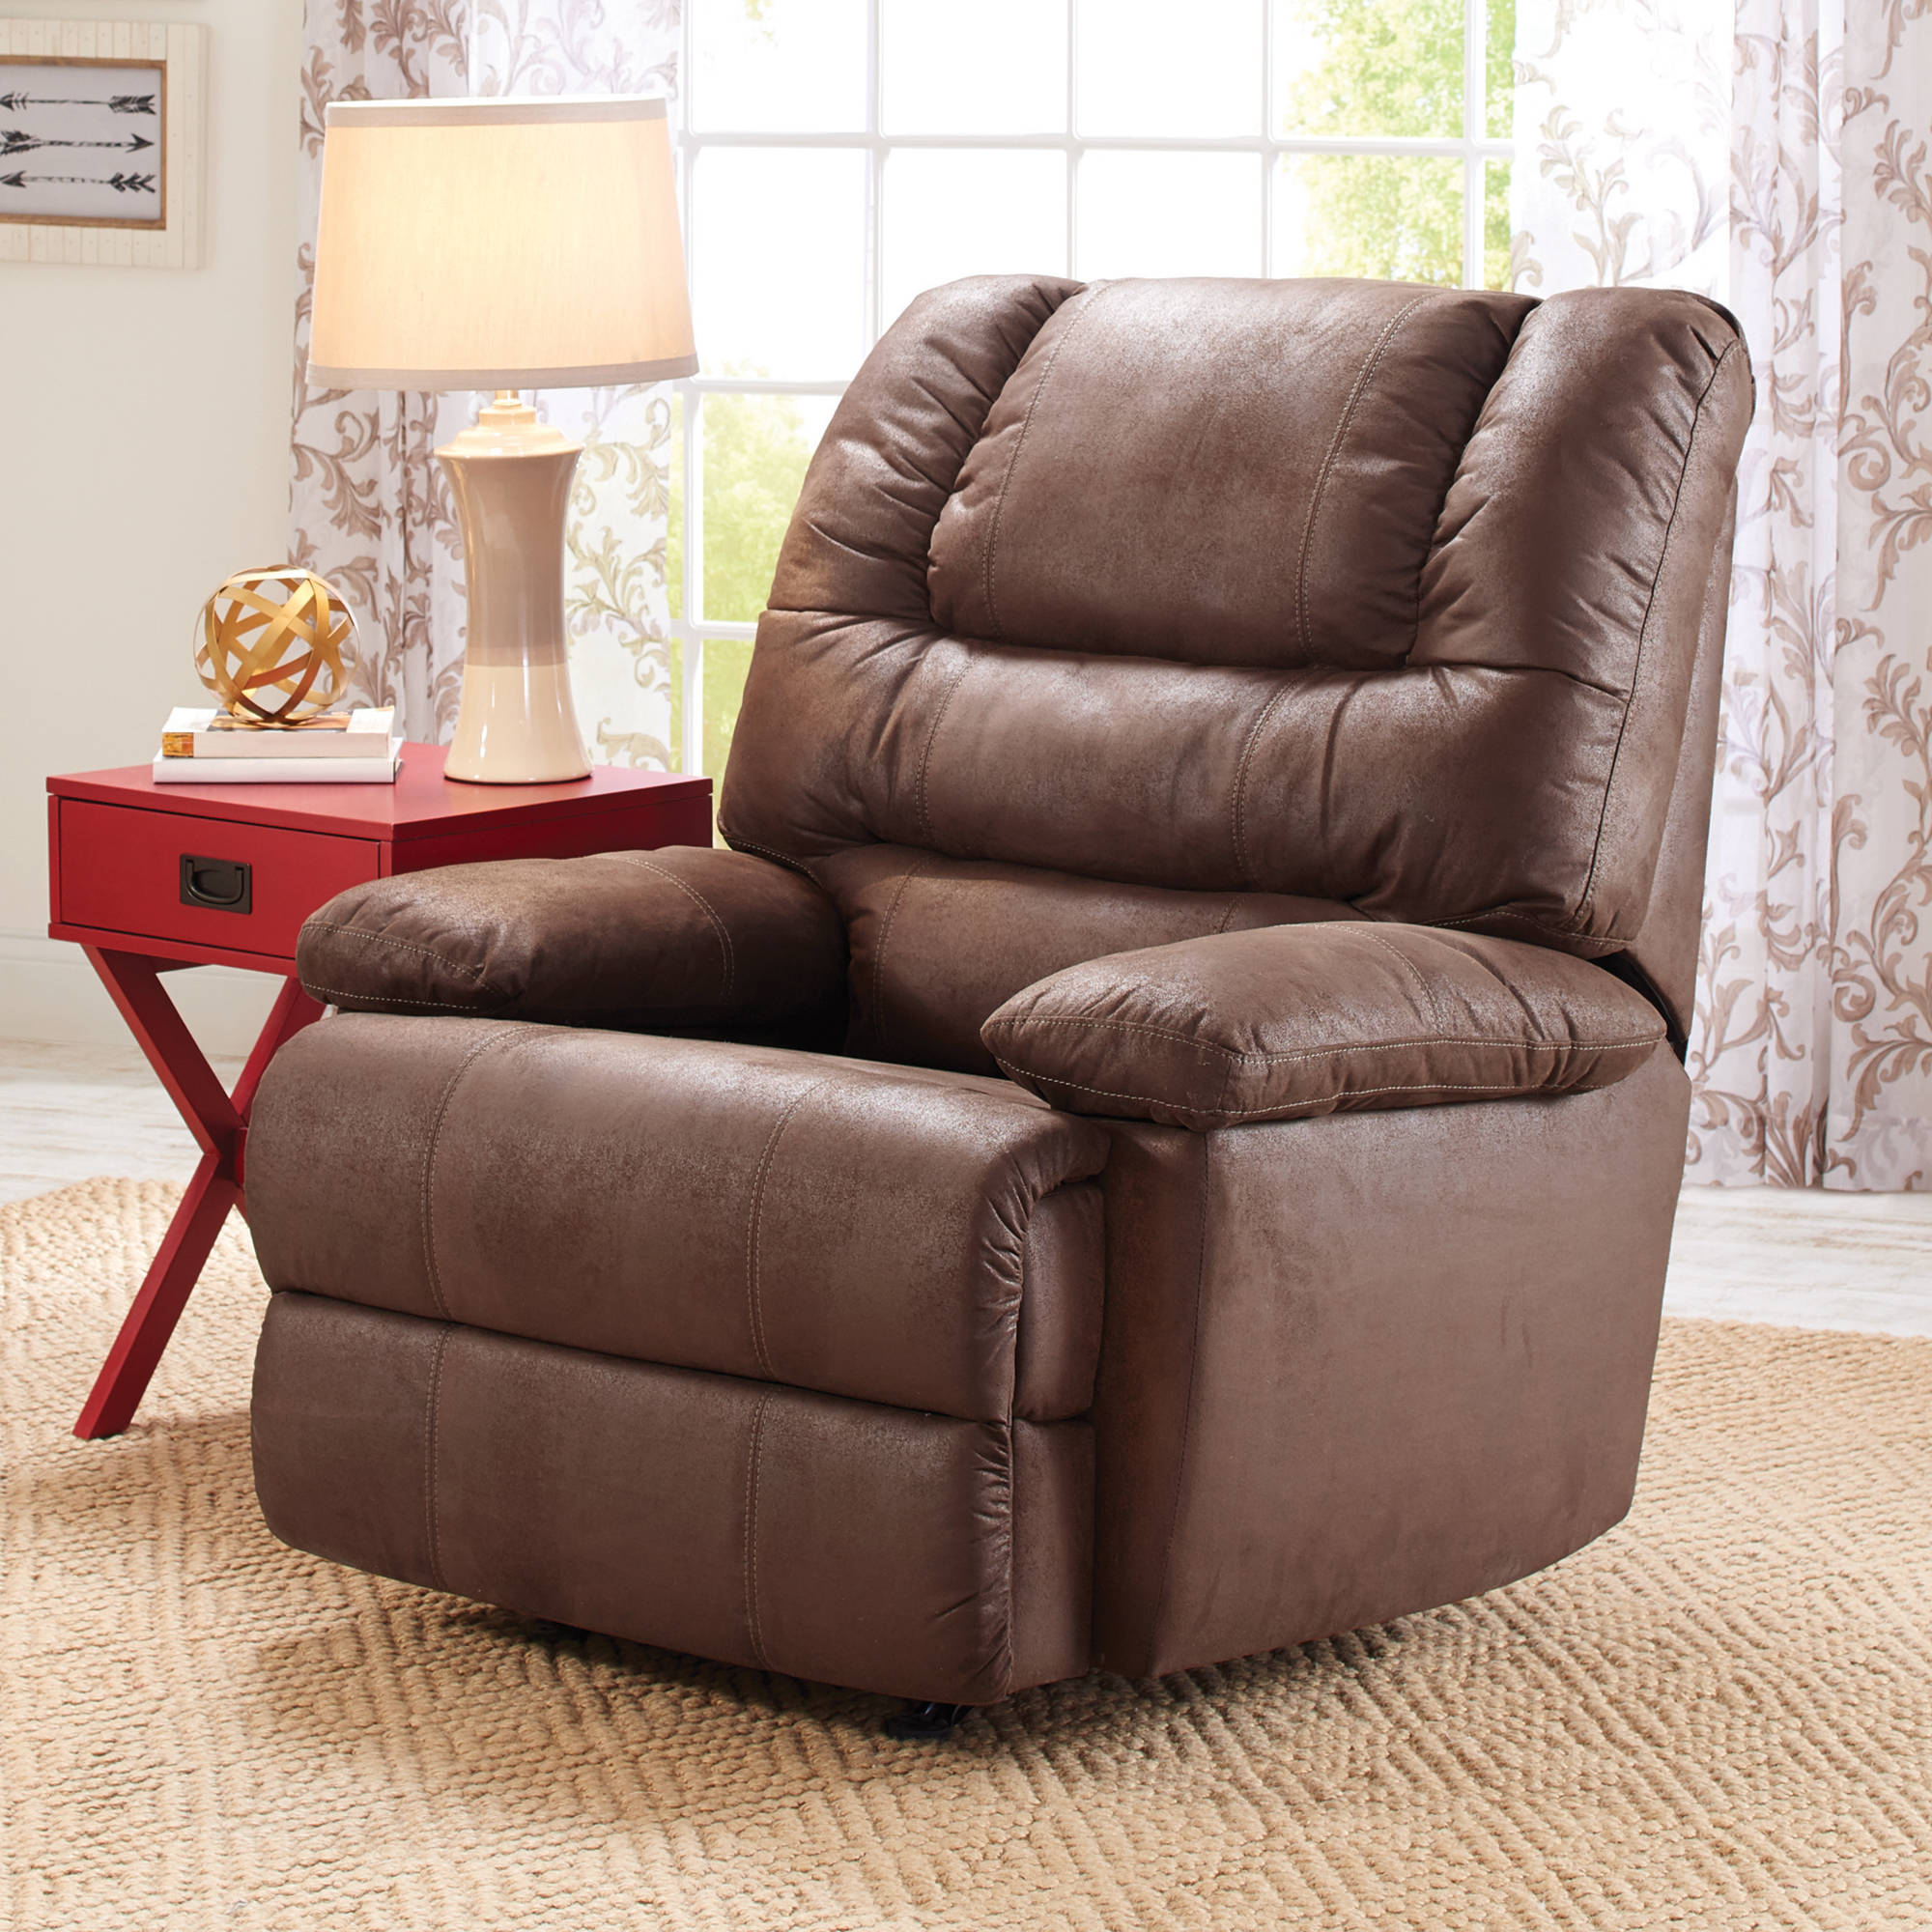 Better Homes and Gardens Deluxe Recliner Walmart